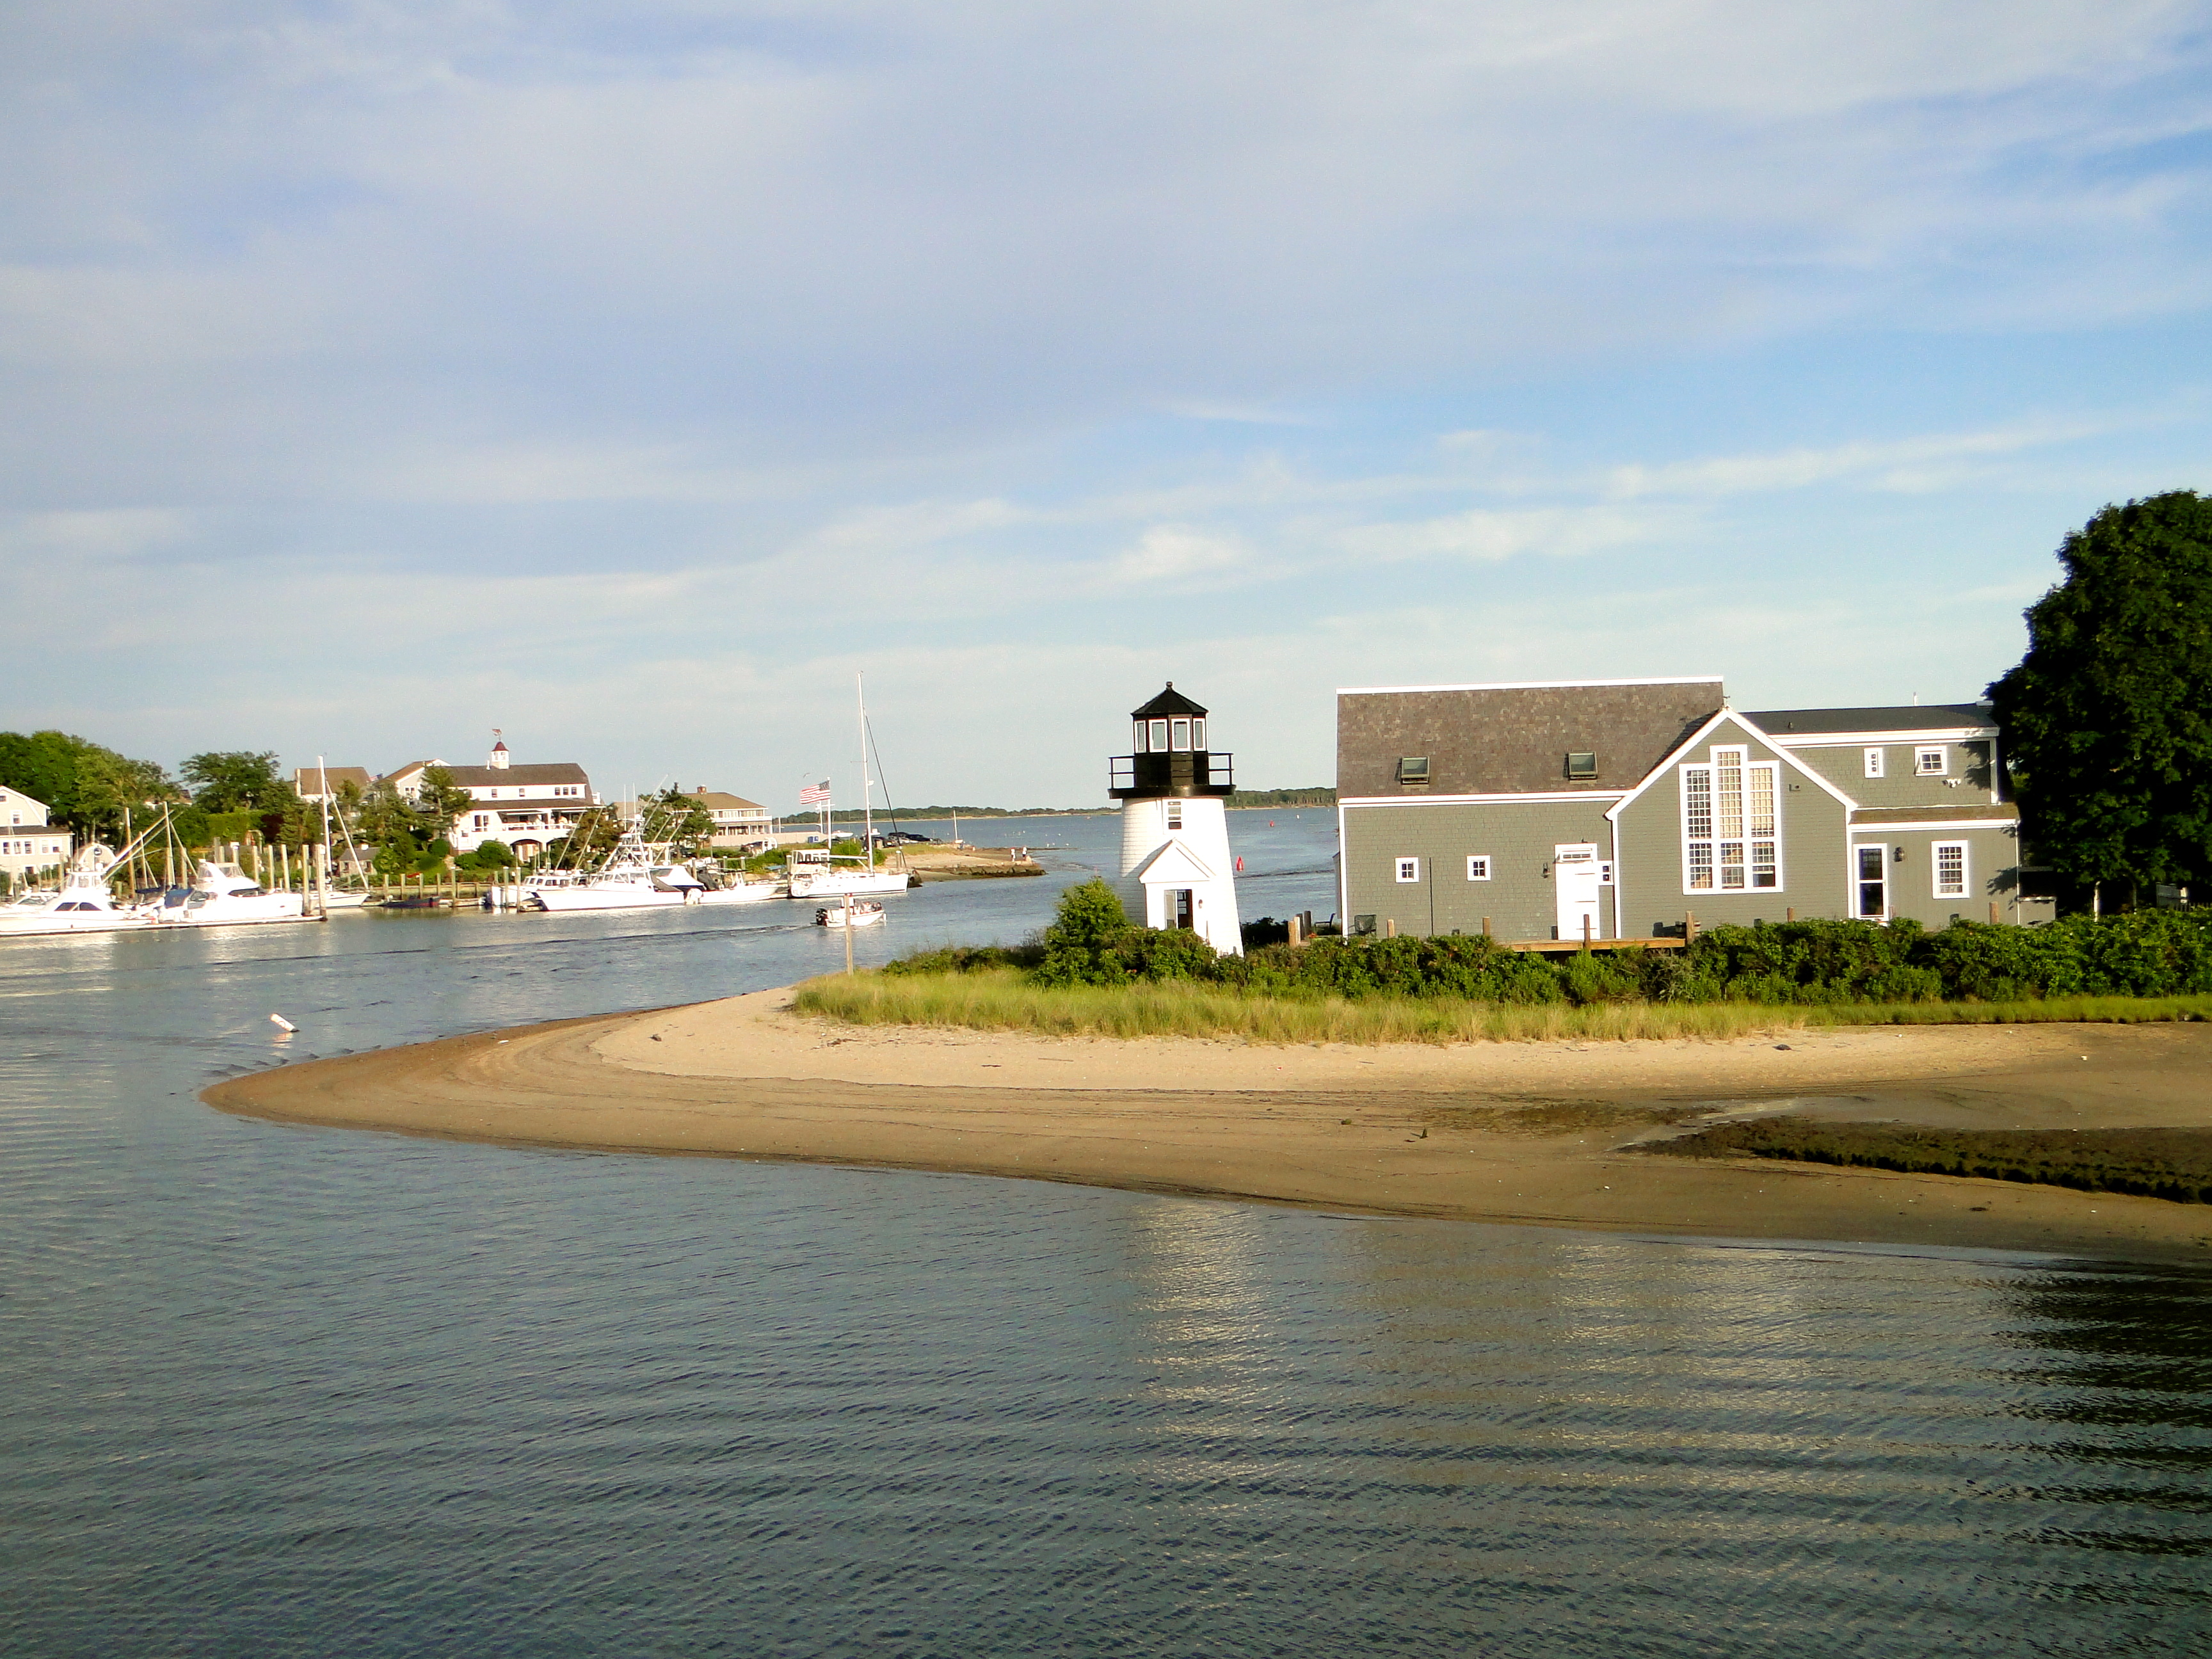 hyannis single personals Cape cod singles group for people over 50 years old dining, movies, home parties and meeting new people to share good times cape cod singles group for people over 50 years old dining, movies, home parties and meeting new people to share good times.